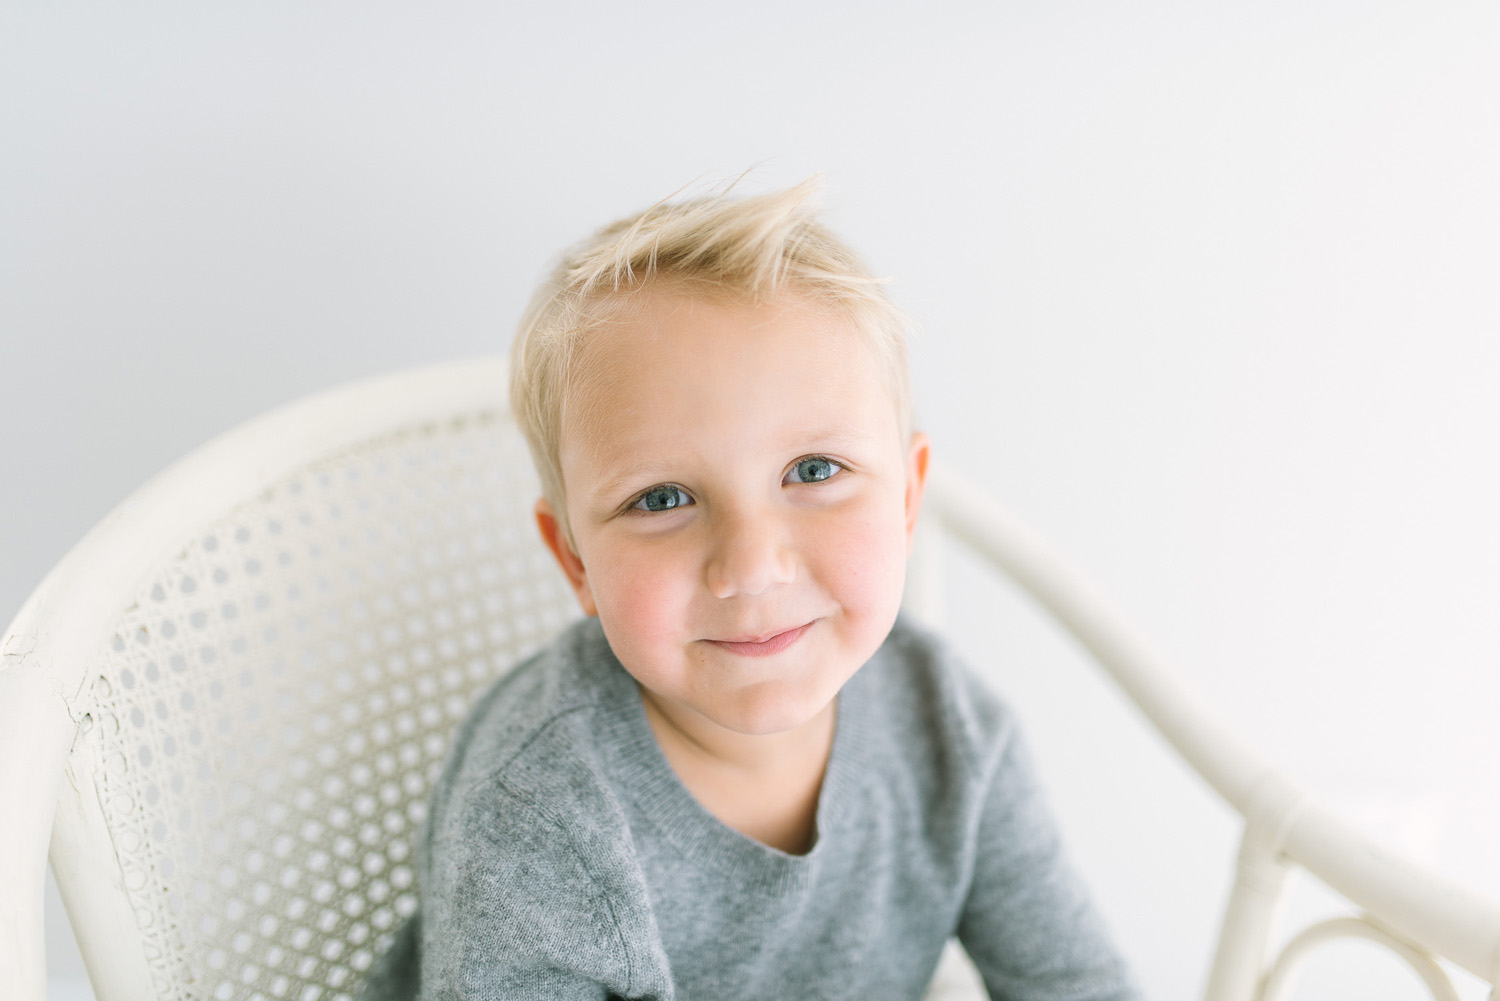 Young blond haired boy sitting on white cane chair smiling at camera during children's photography session in Sutherland Shire Baby and children's photography Studio in Sutherland Shire Sydney